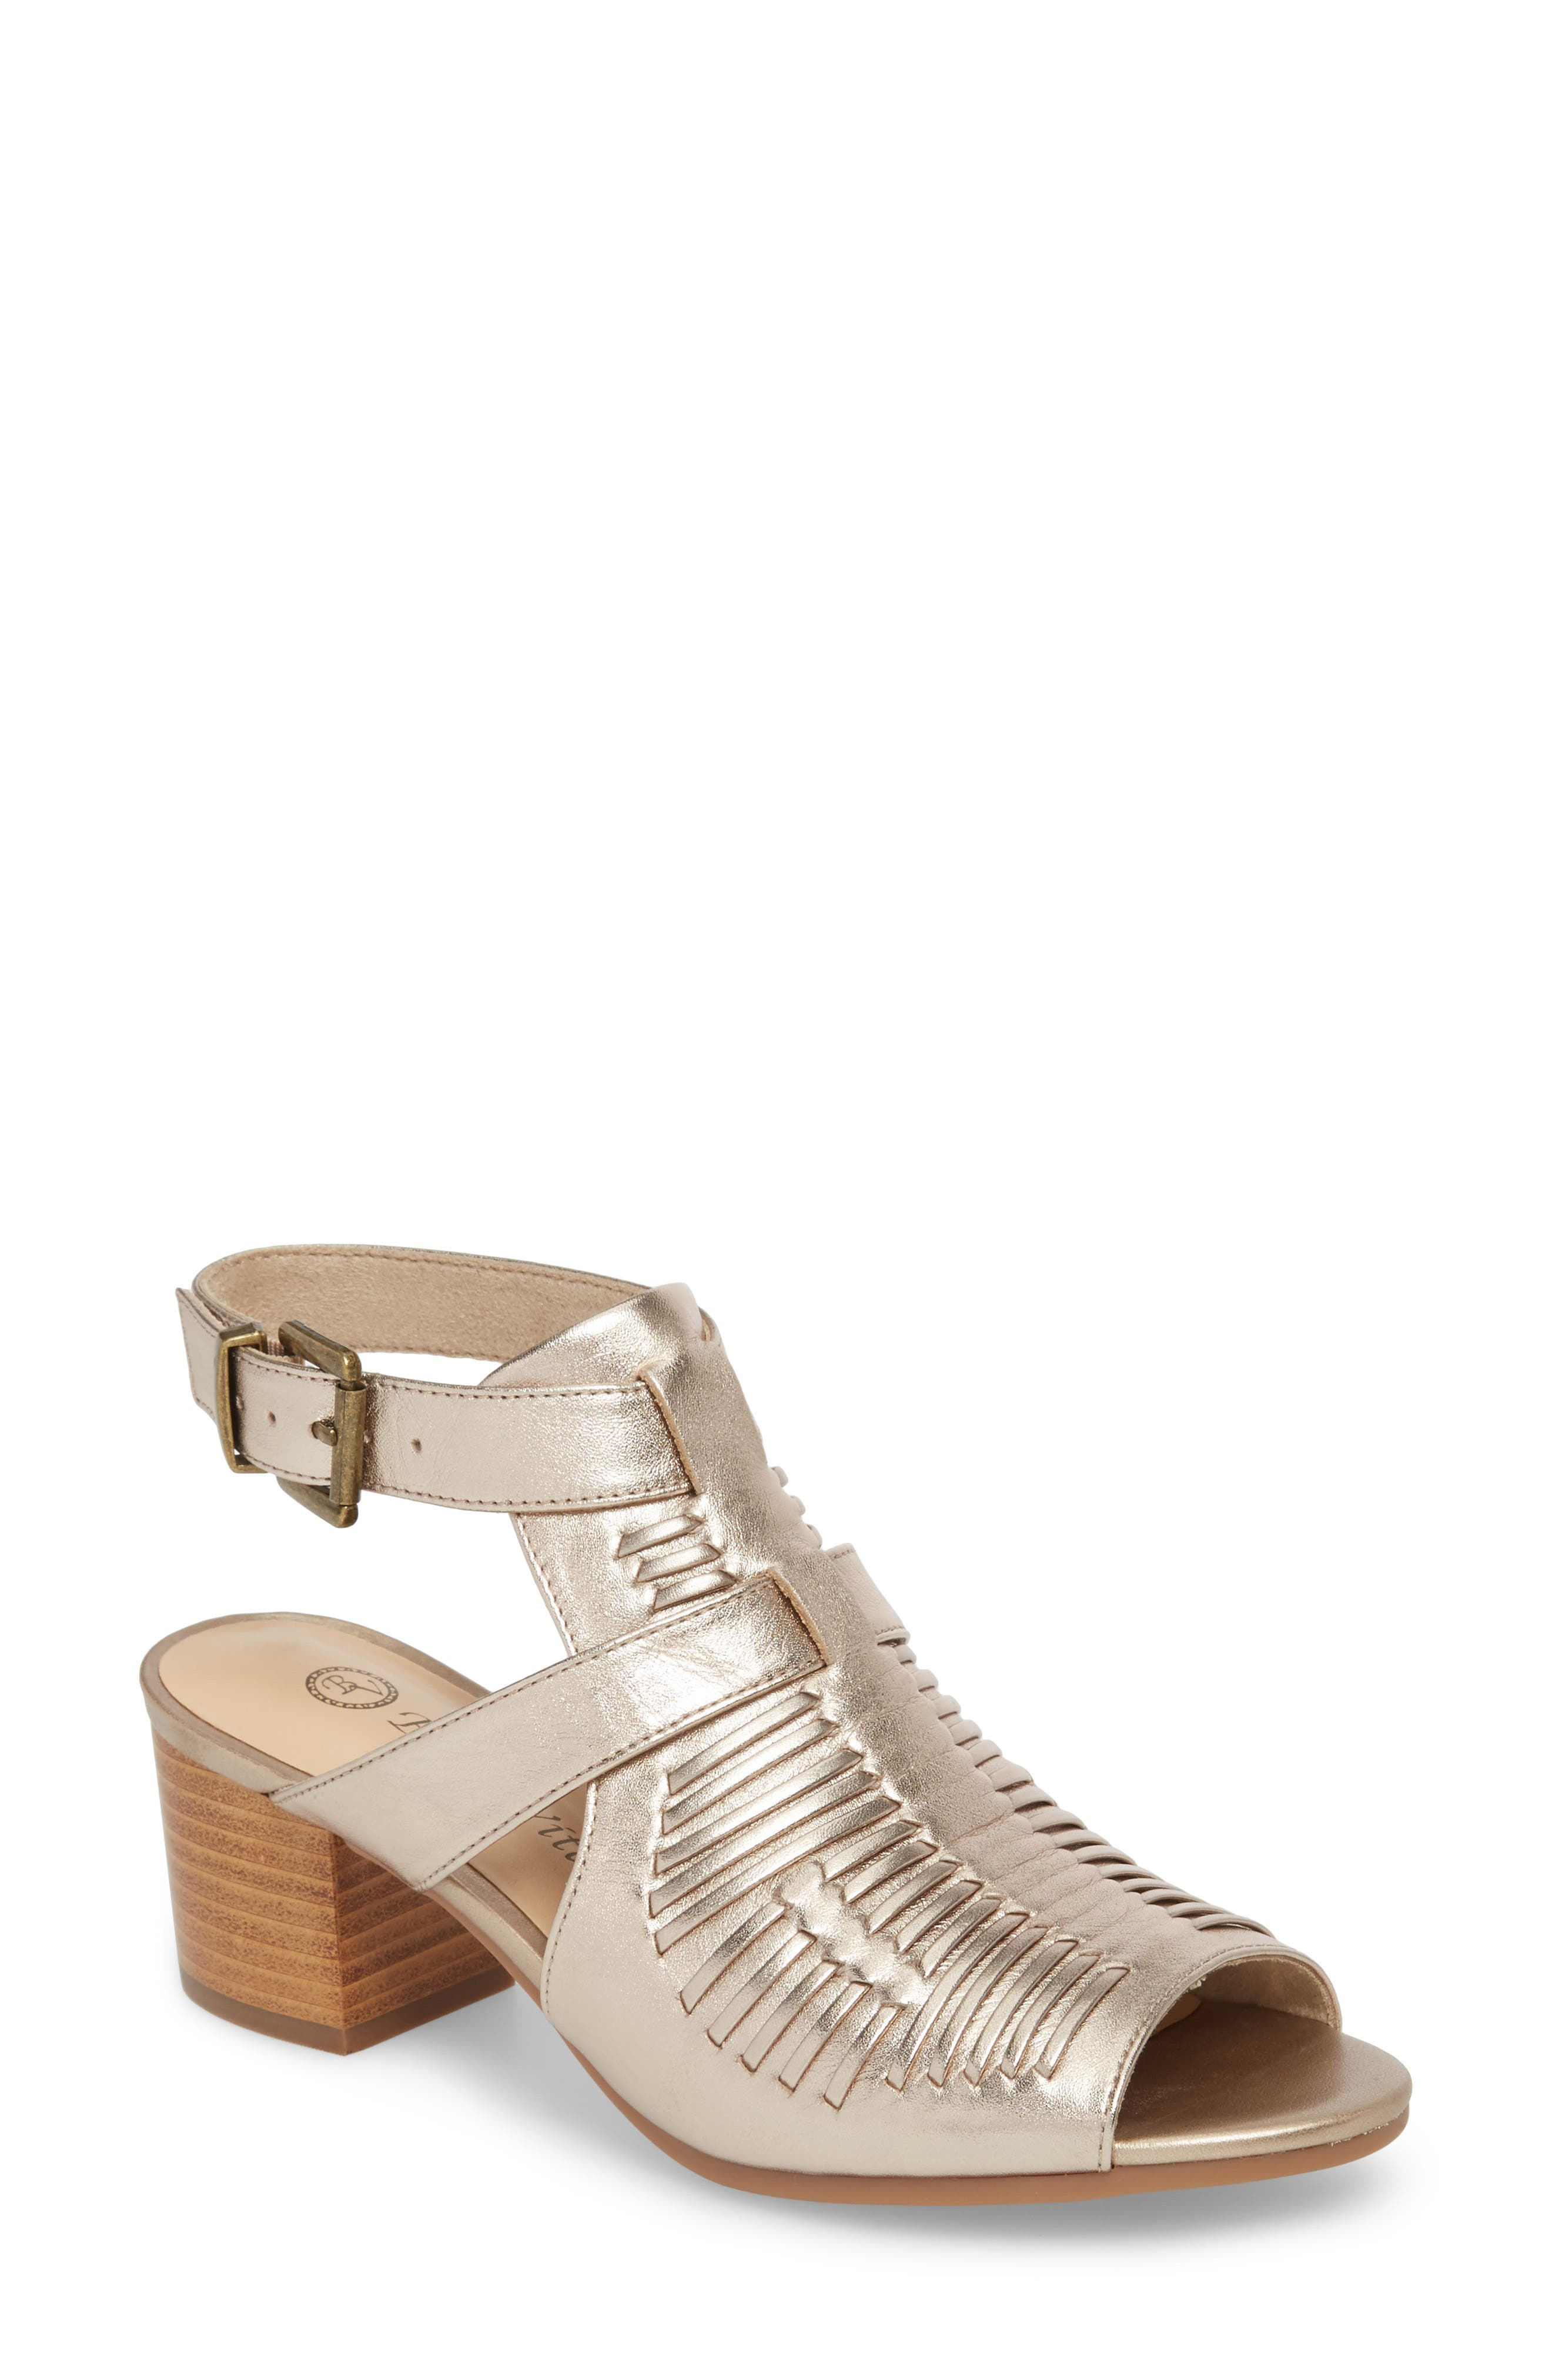 Finley Ankle Strap Sandal,                         Main,                         color, Champagne Fabric